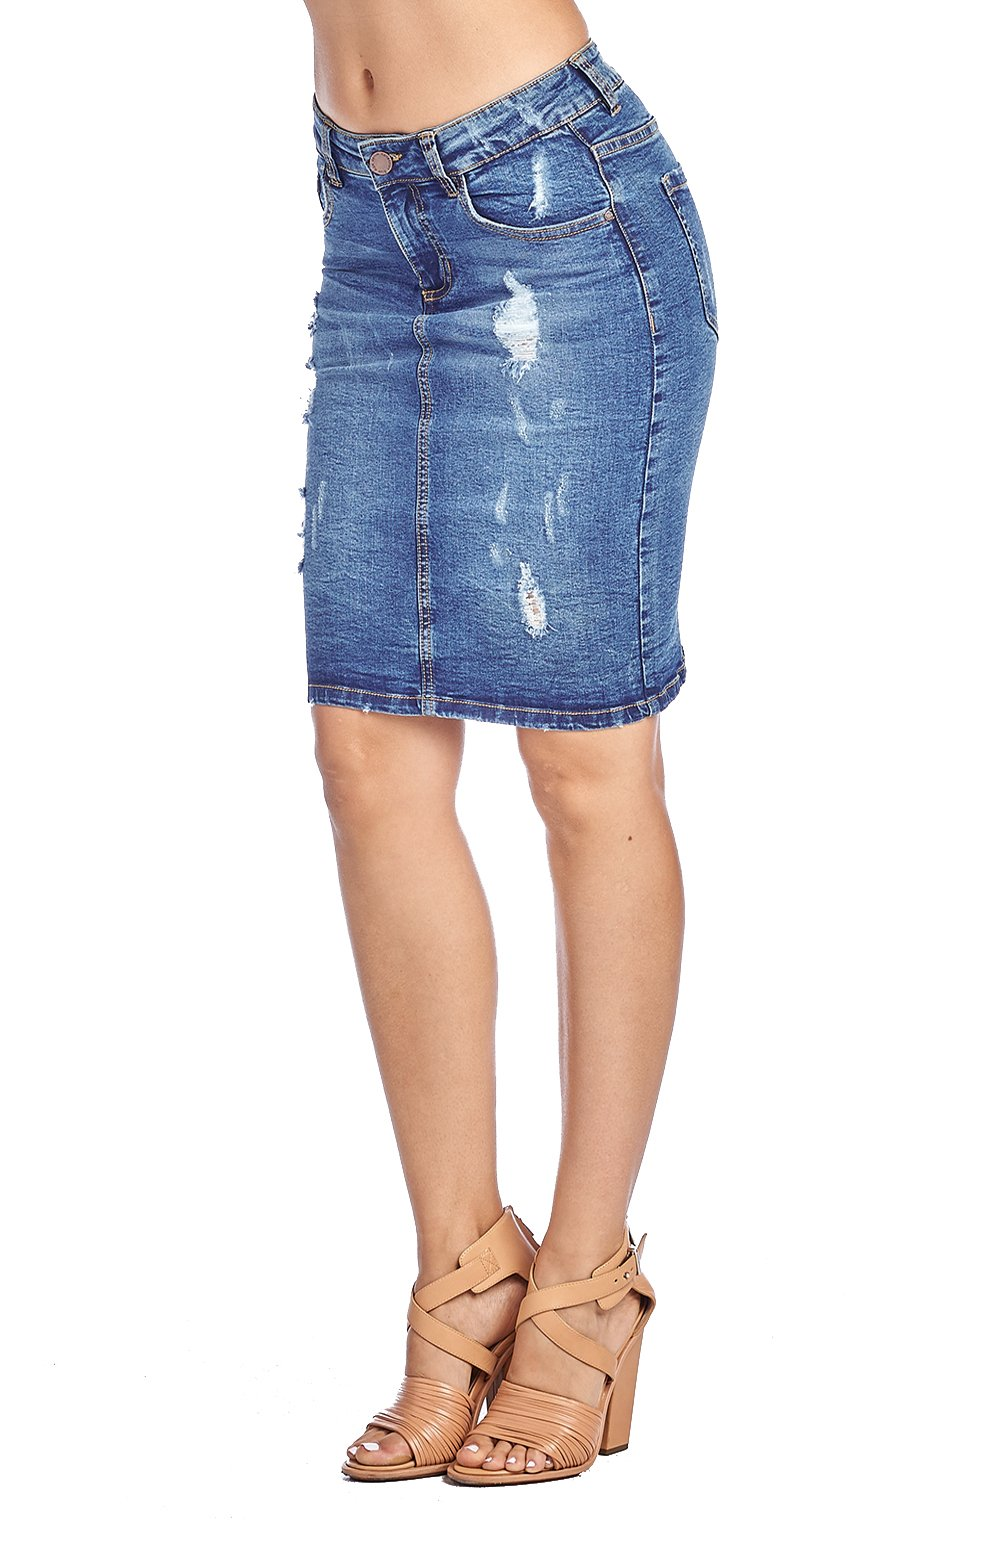 ICONICC Women's Skinny Distressed Denim Jean Skirt (SS1002_MD_XL)